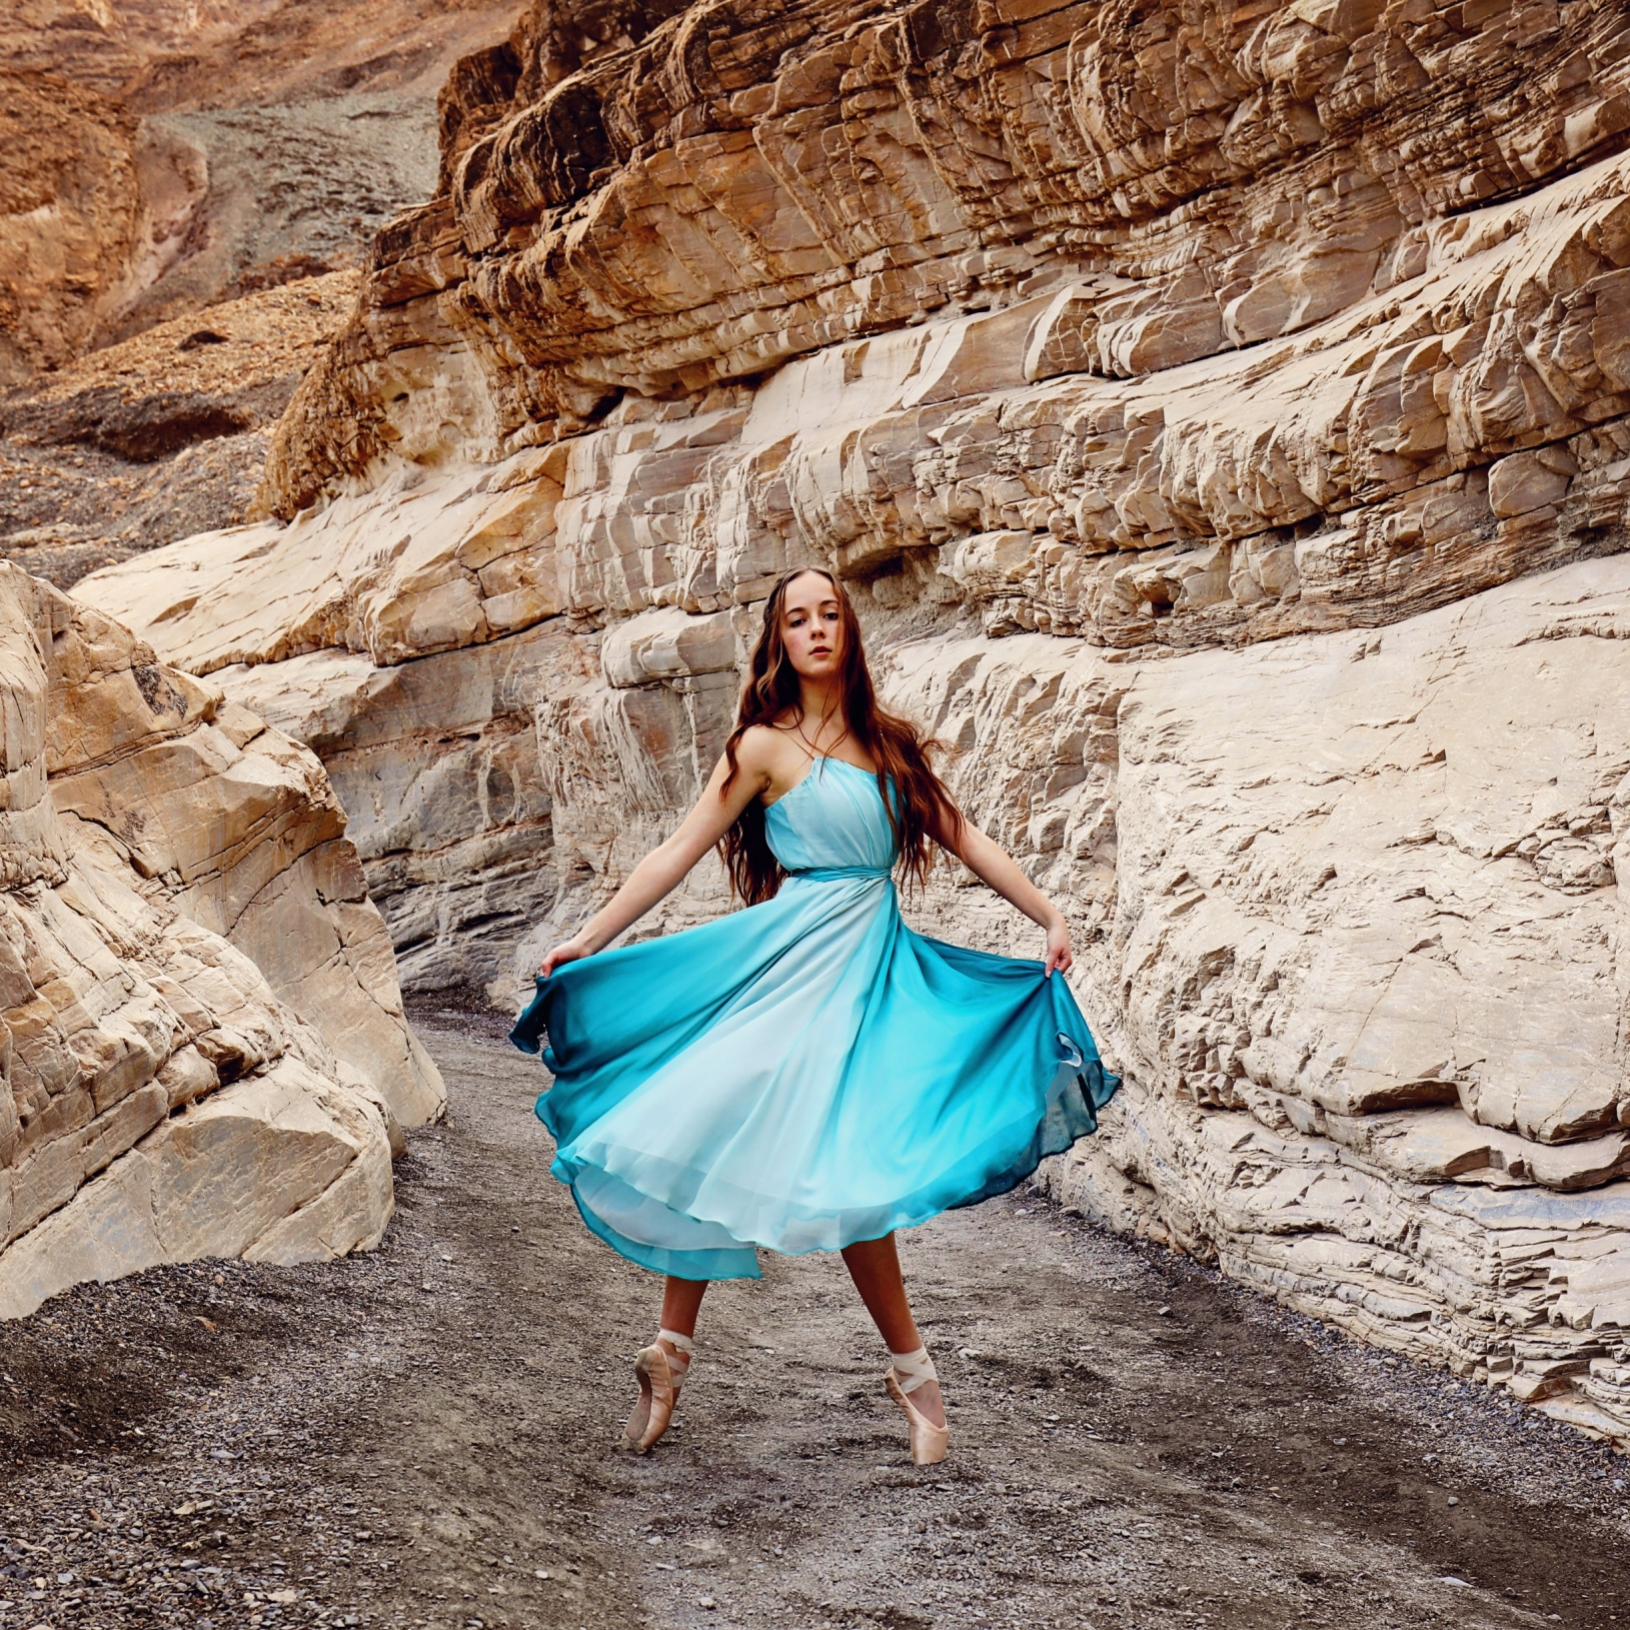 Dancer on pointe in turquoise chiffon dress by Christina Morgan Cree in Golden Canyon Death Valley photo by Bari Lee